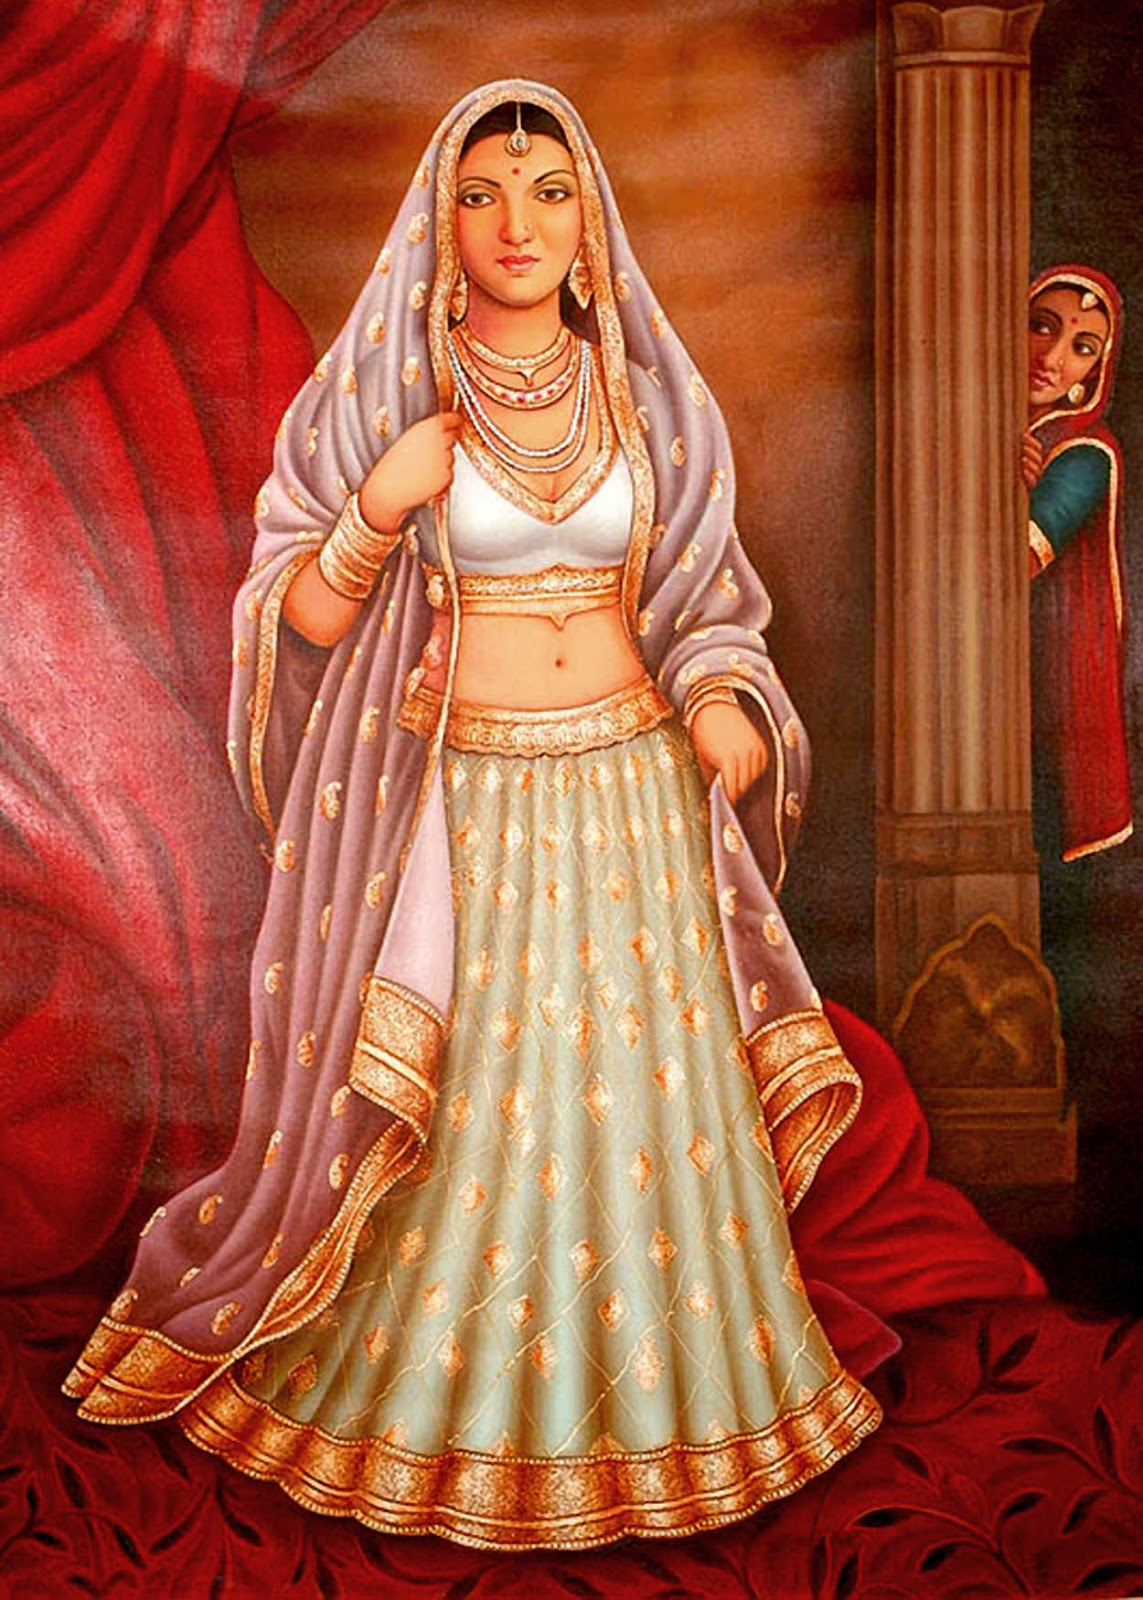 Cute Stylish Child Girl Wallpaper Rajasthani Woman S Painting From India Best Indian Art